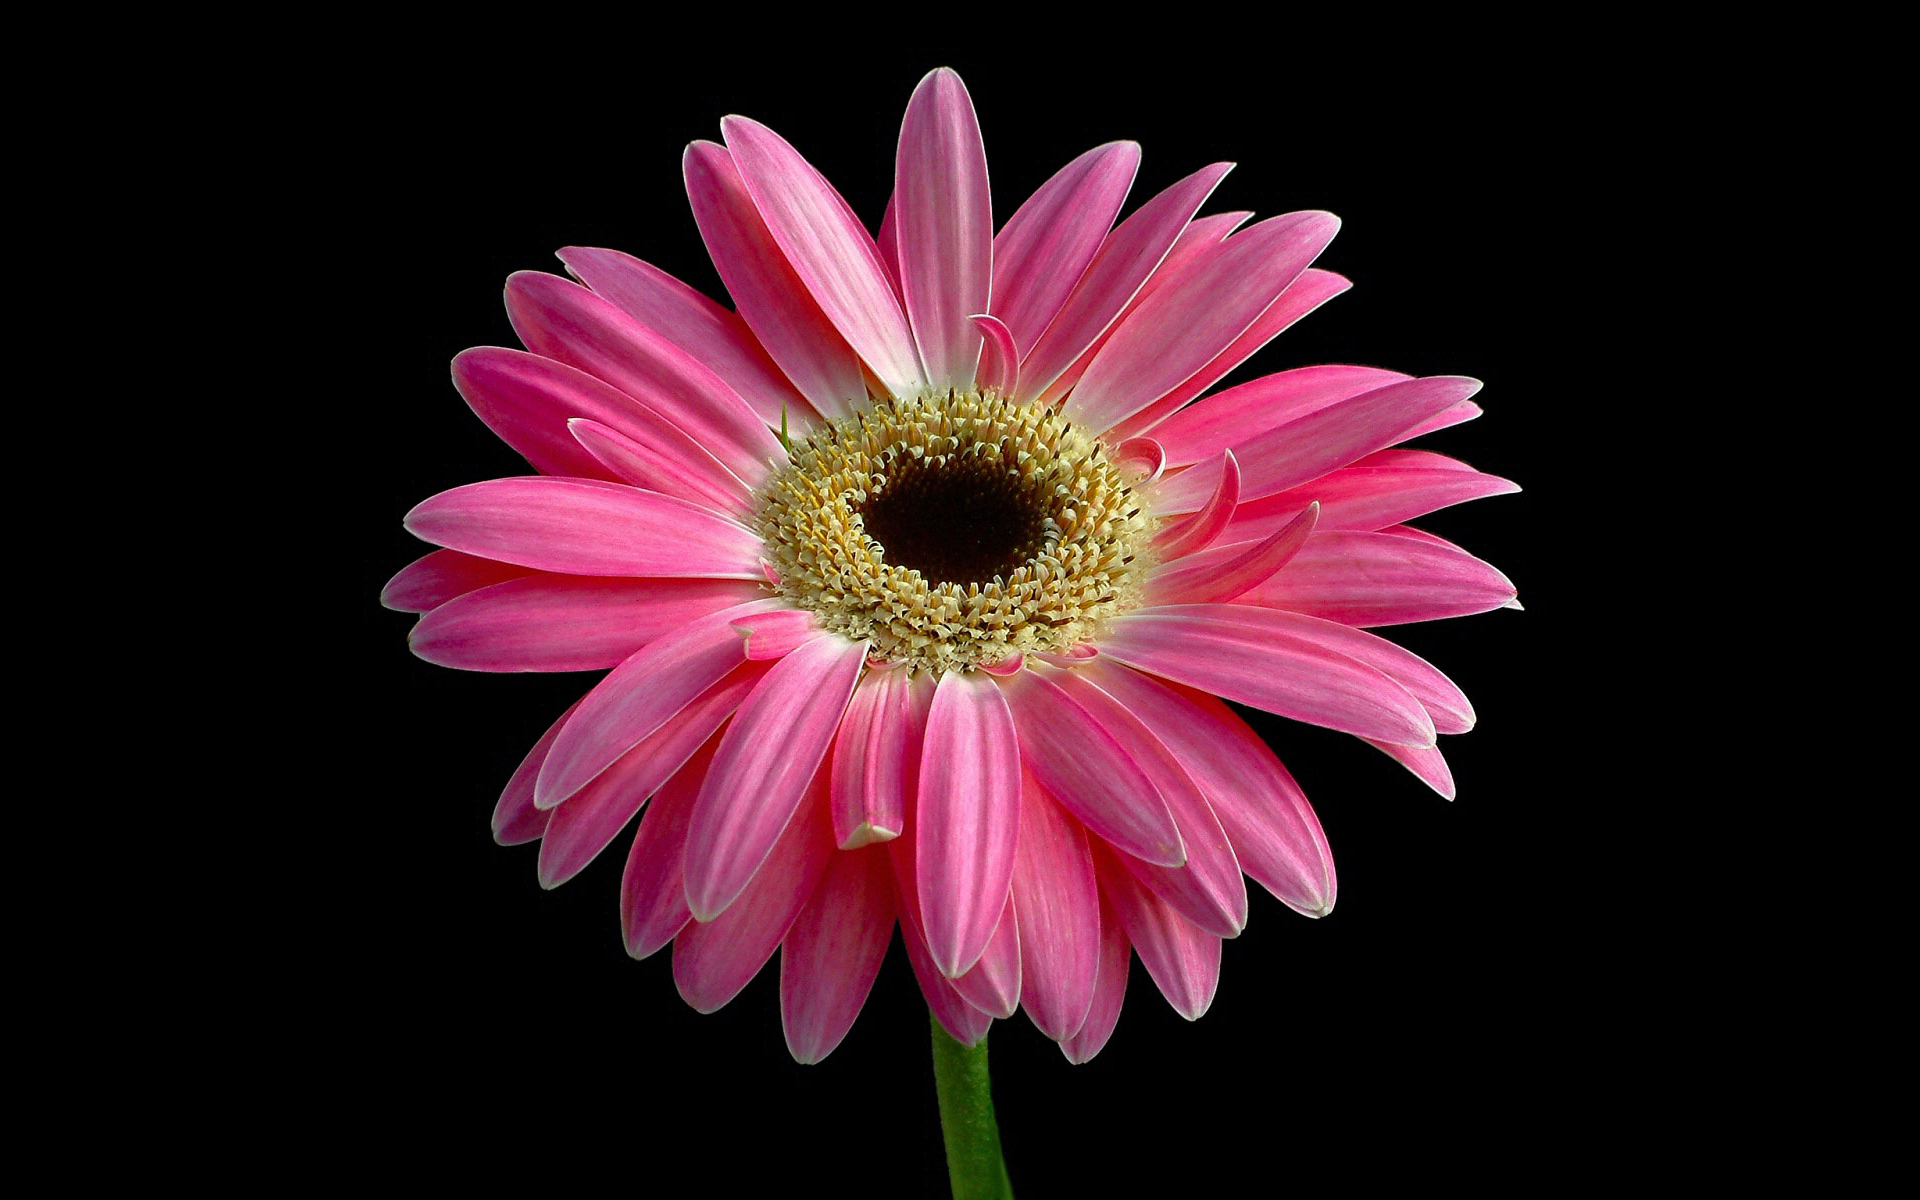 wallpaper pink flowered flower - photo #7